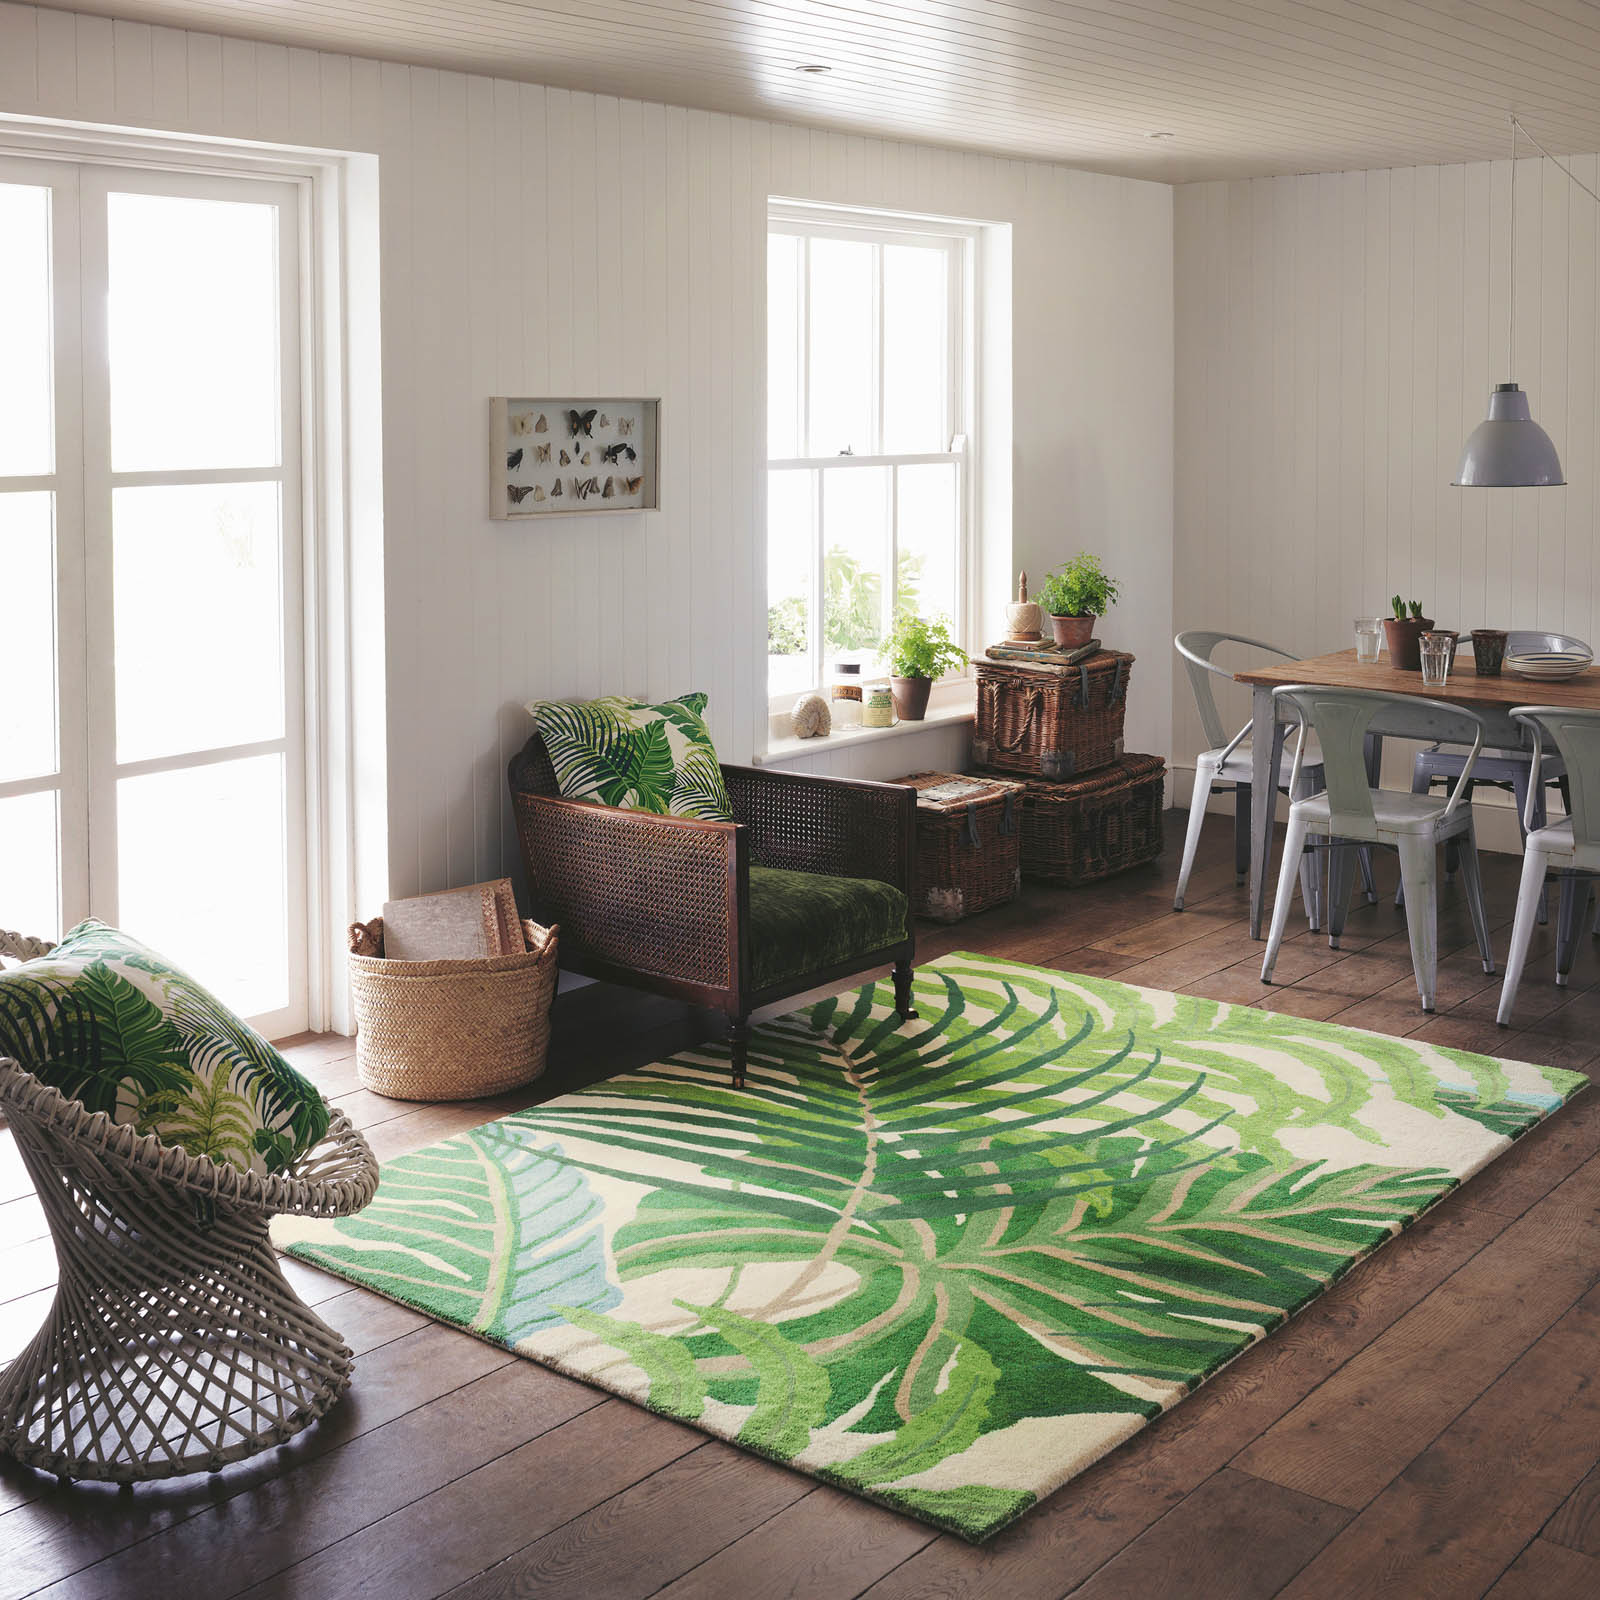 Design Squish Blog Pastureland Inspired Rugs By Alexandra: Tropical Floor Style: Sanderson Manila Rug